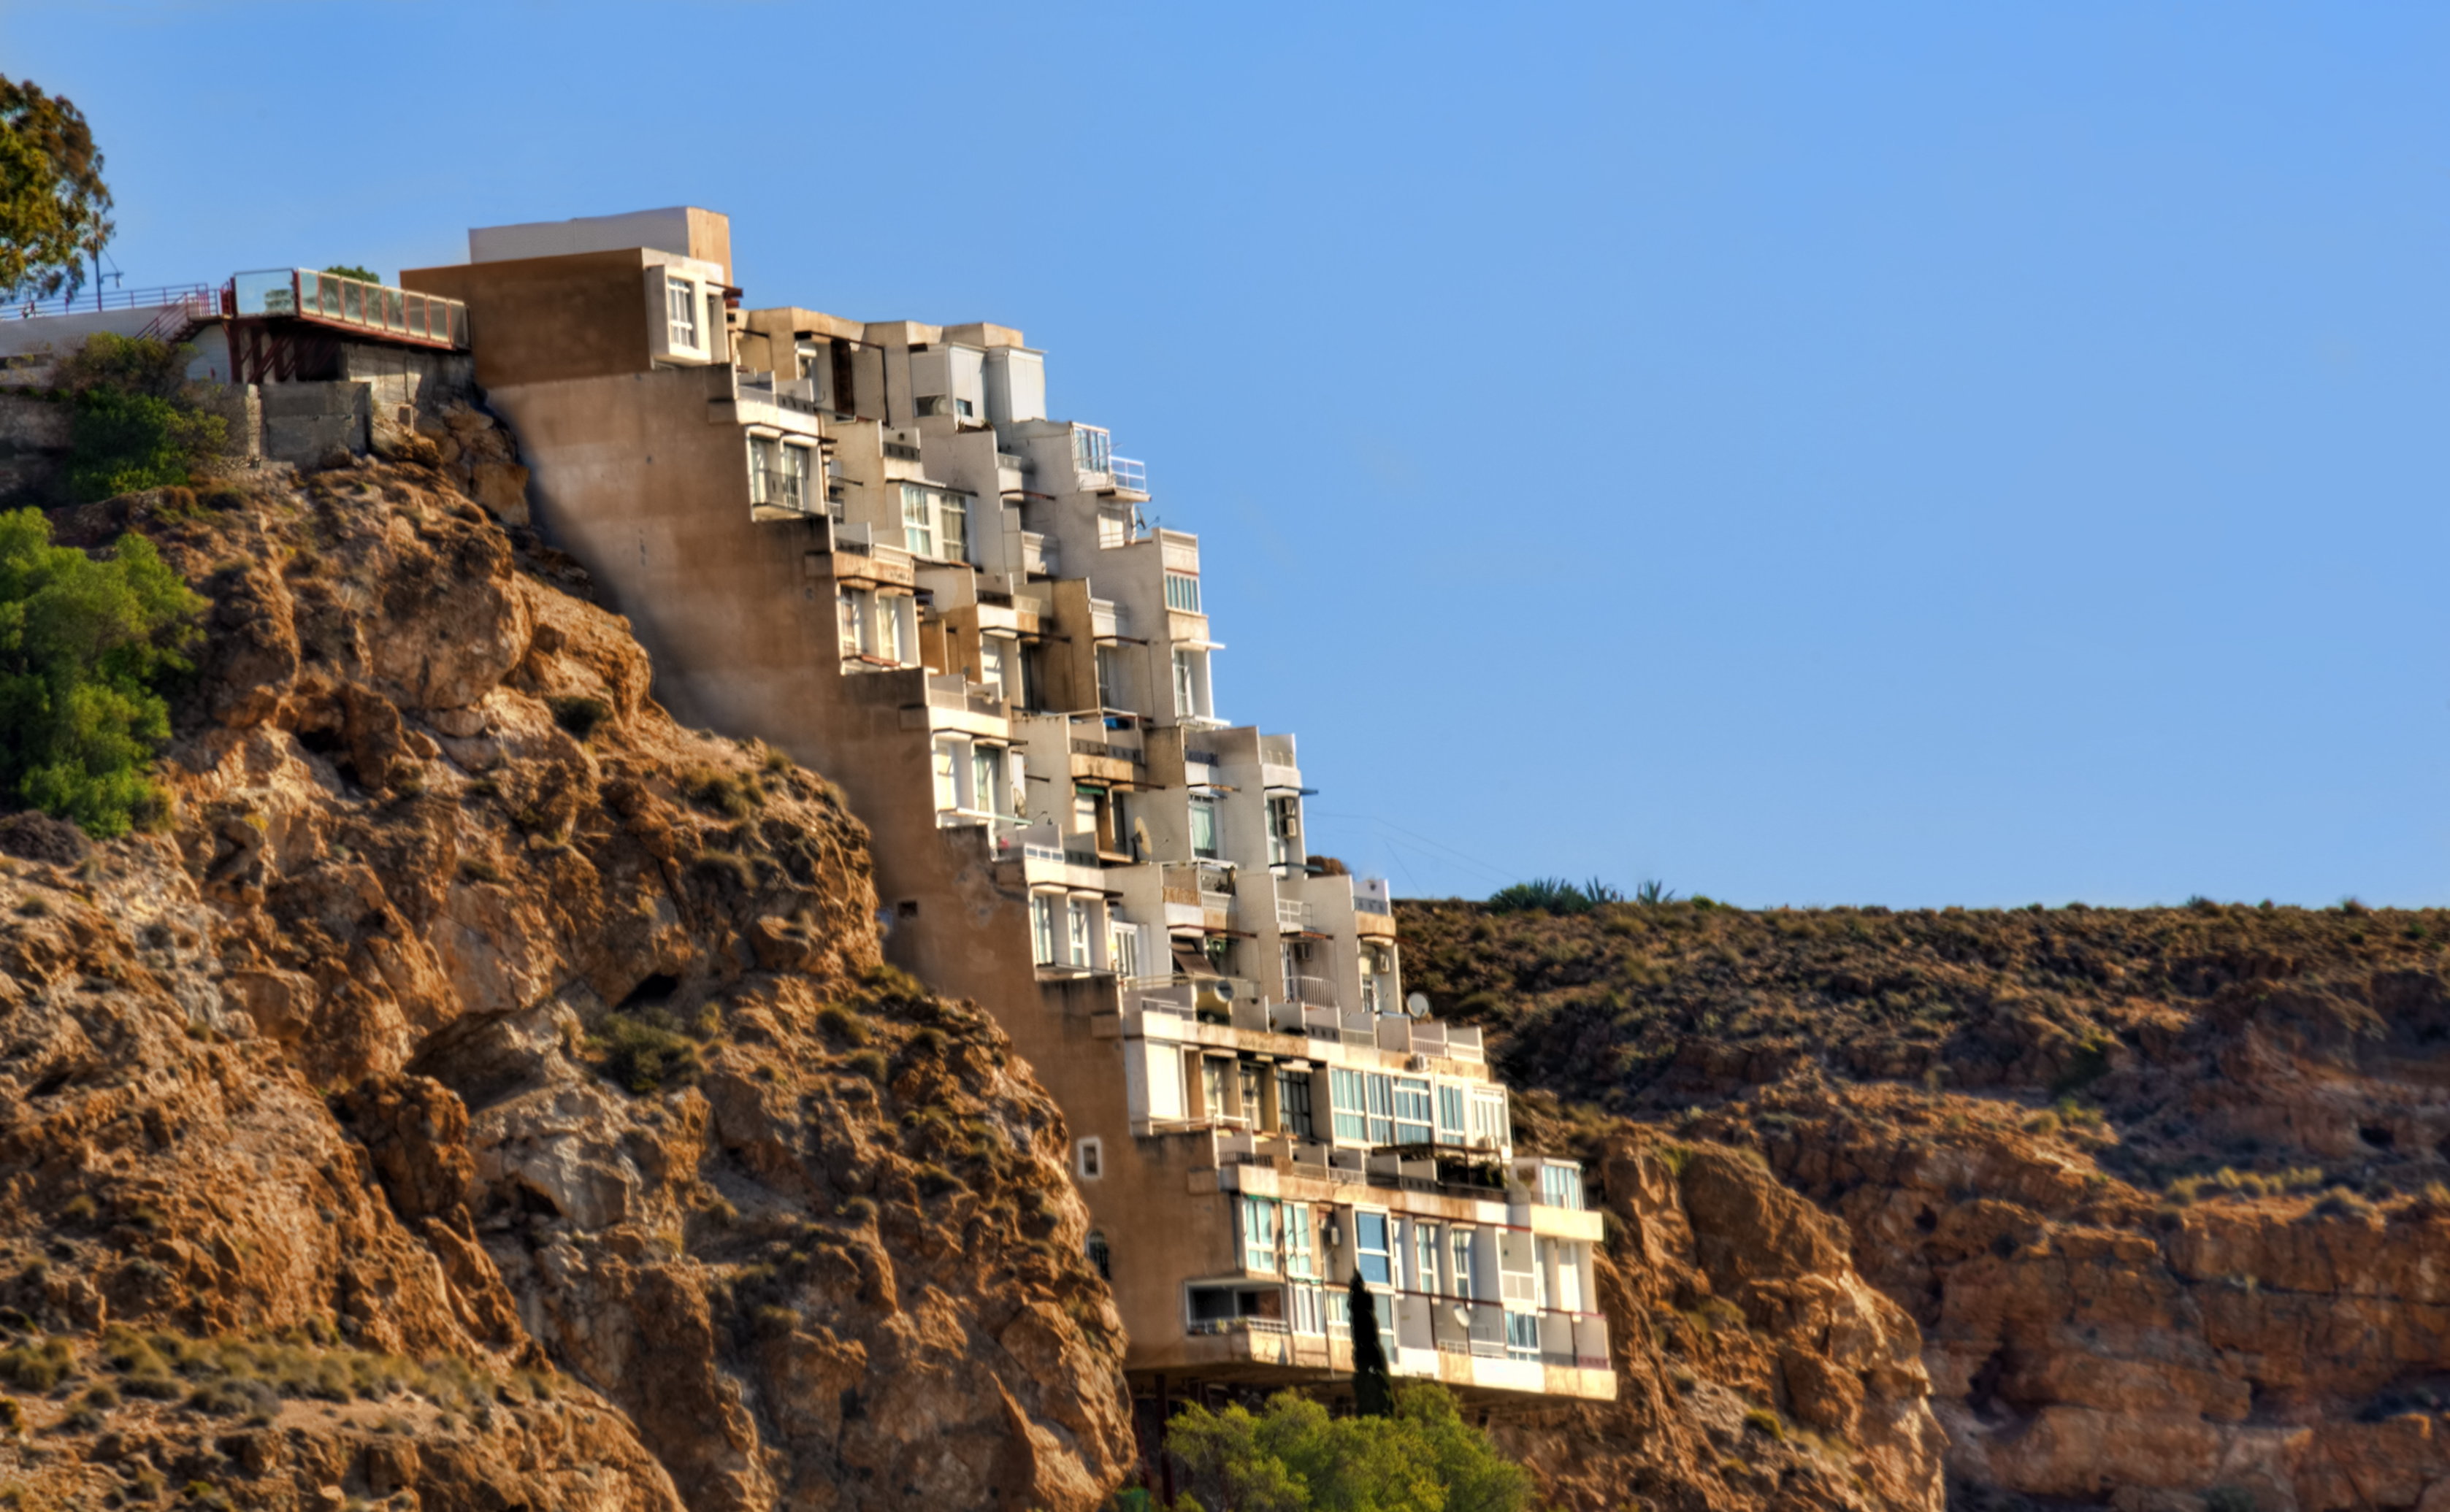 File:Living on the side of a mountain (9612875645).jpg - Wikimedia ...